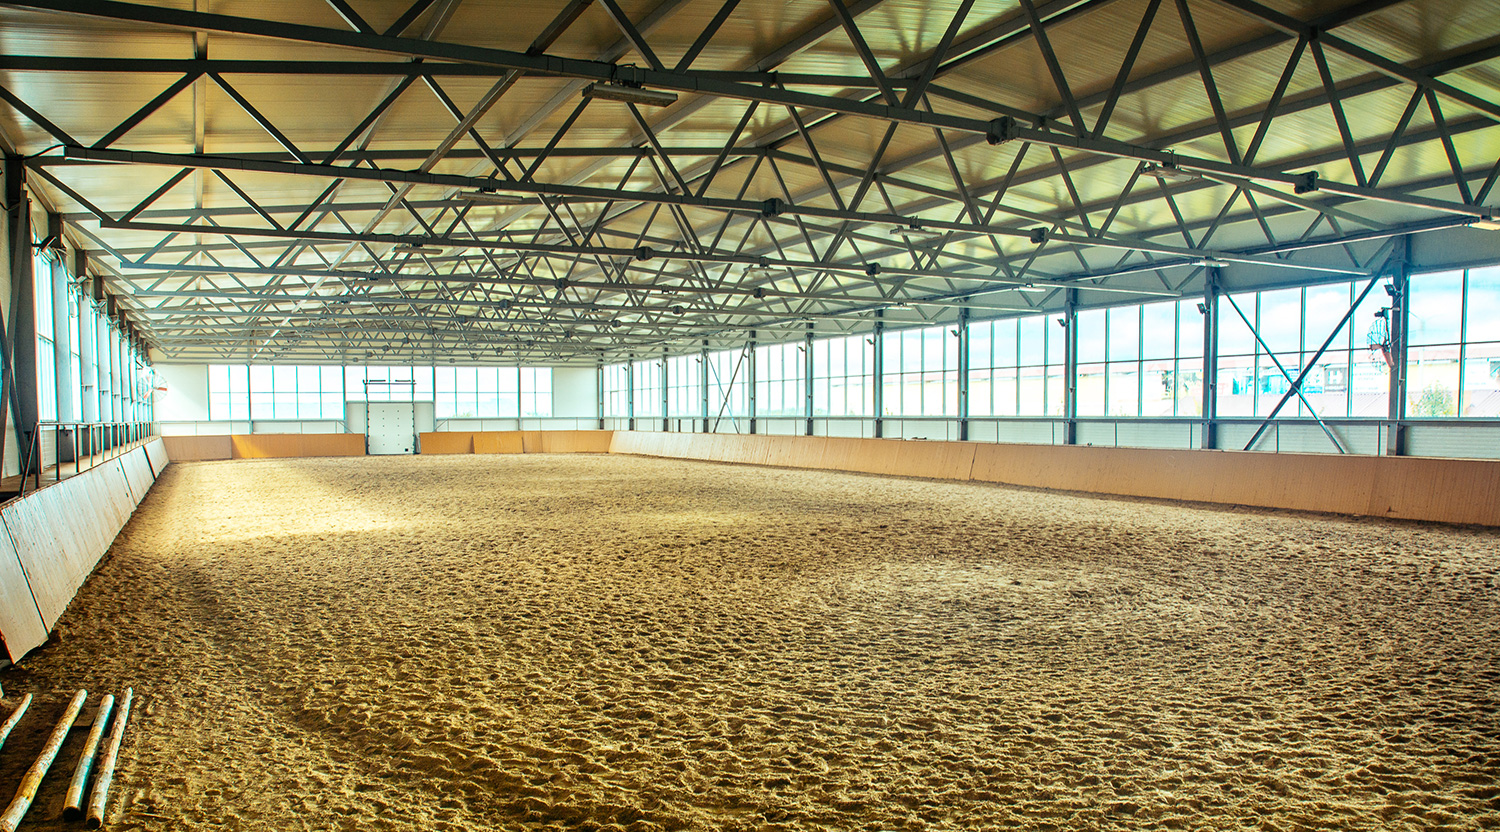 Horse Arena Designs That Maximize Space Indoor Outdoor Arena Ideas